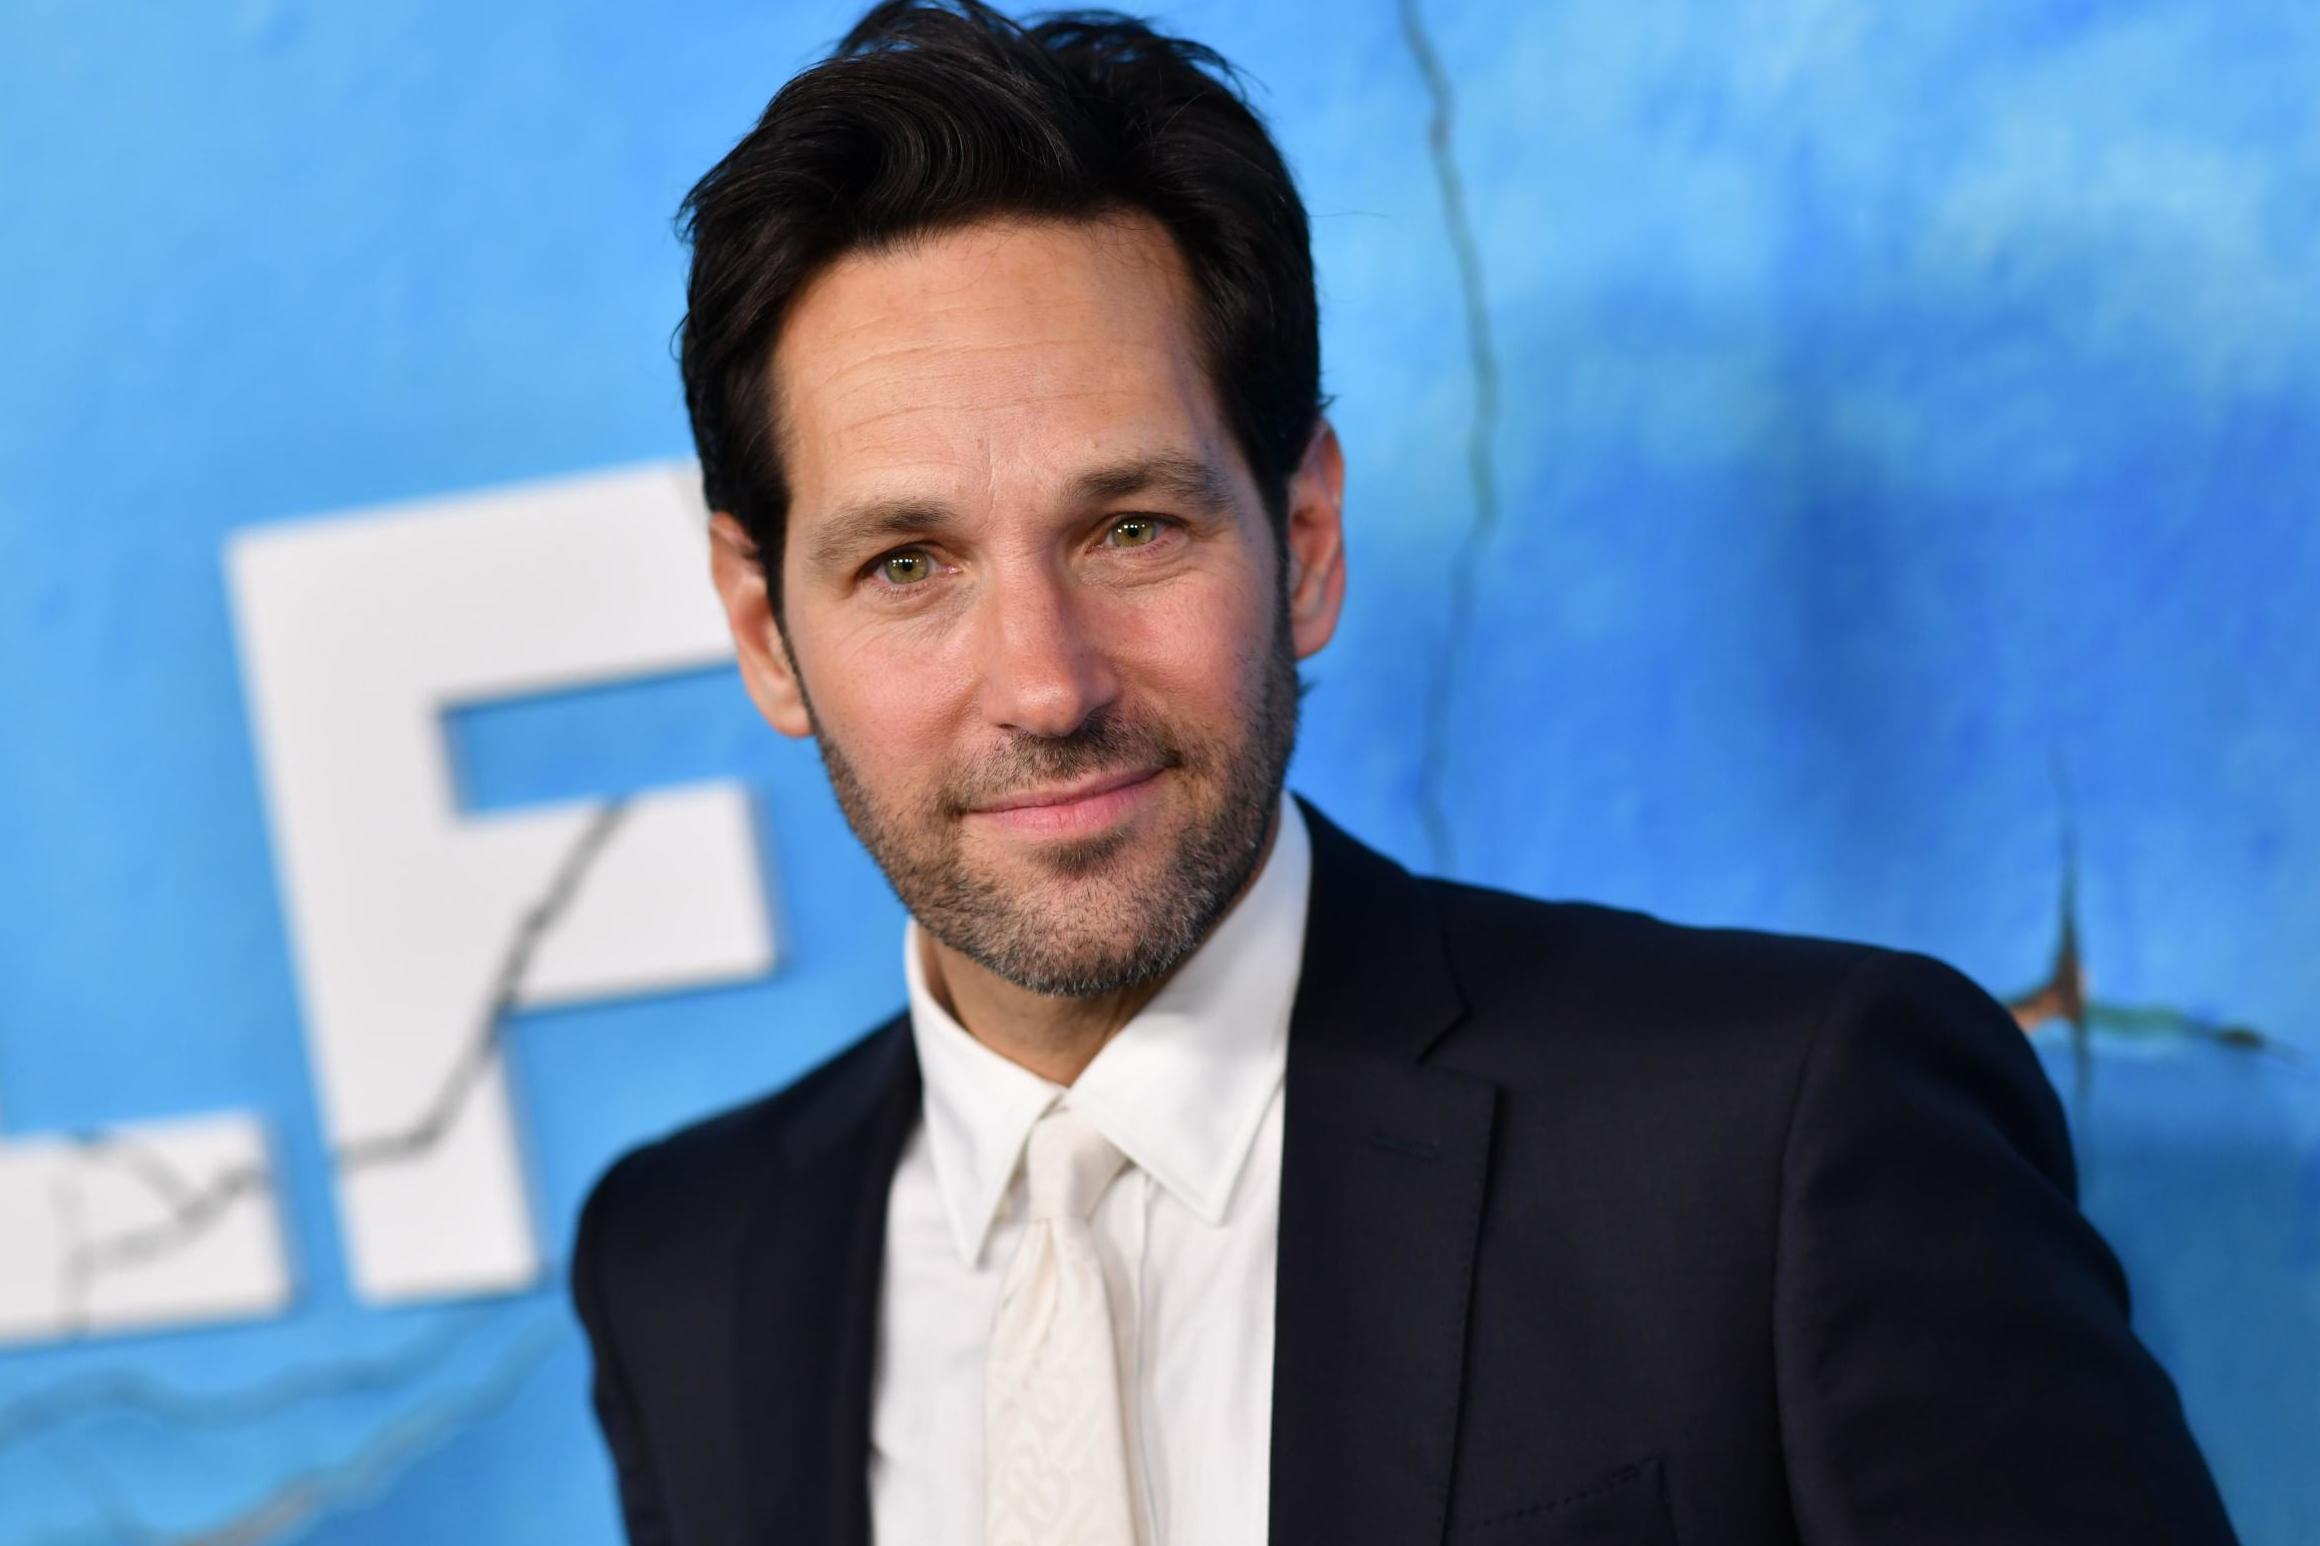 Avengers Endgame: Paul Rudd says not using hilarious Ant-Man storyline was a 'missed opportunity'